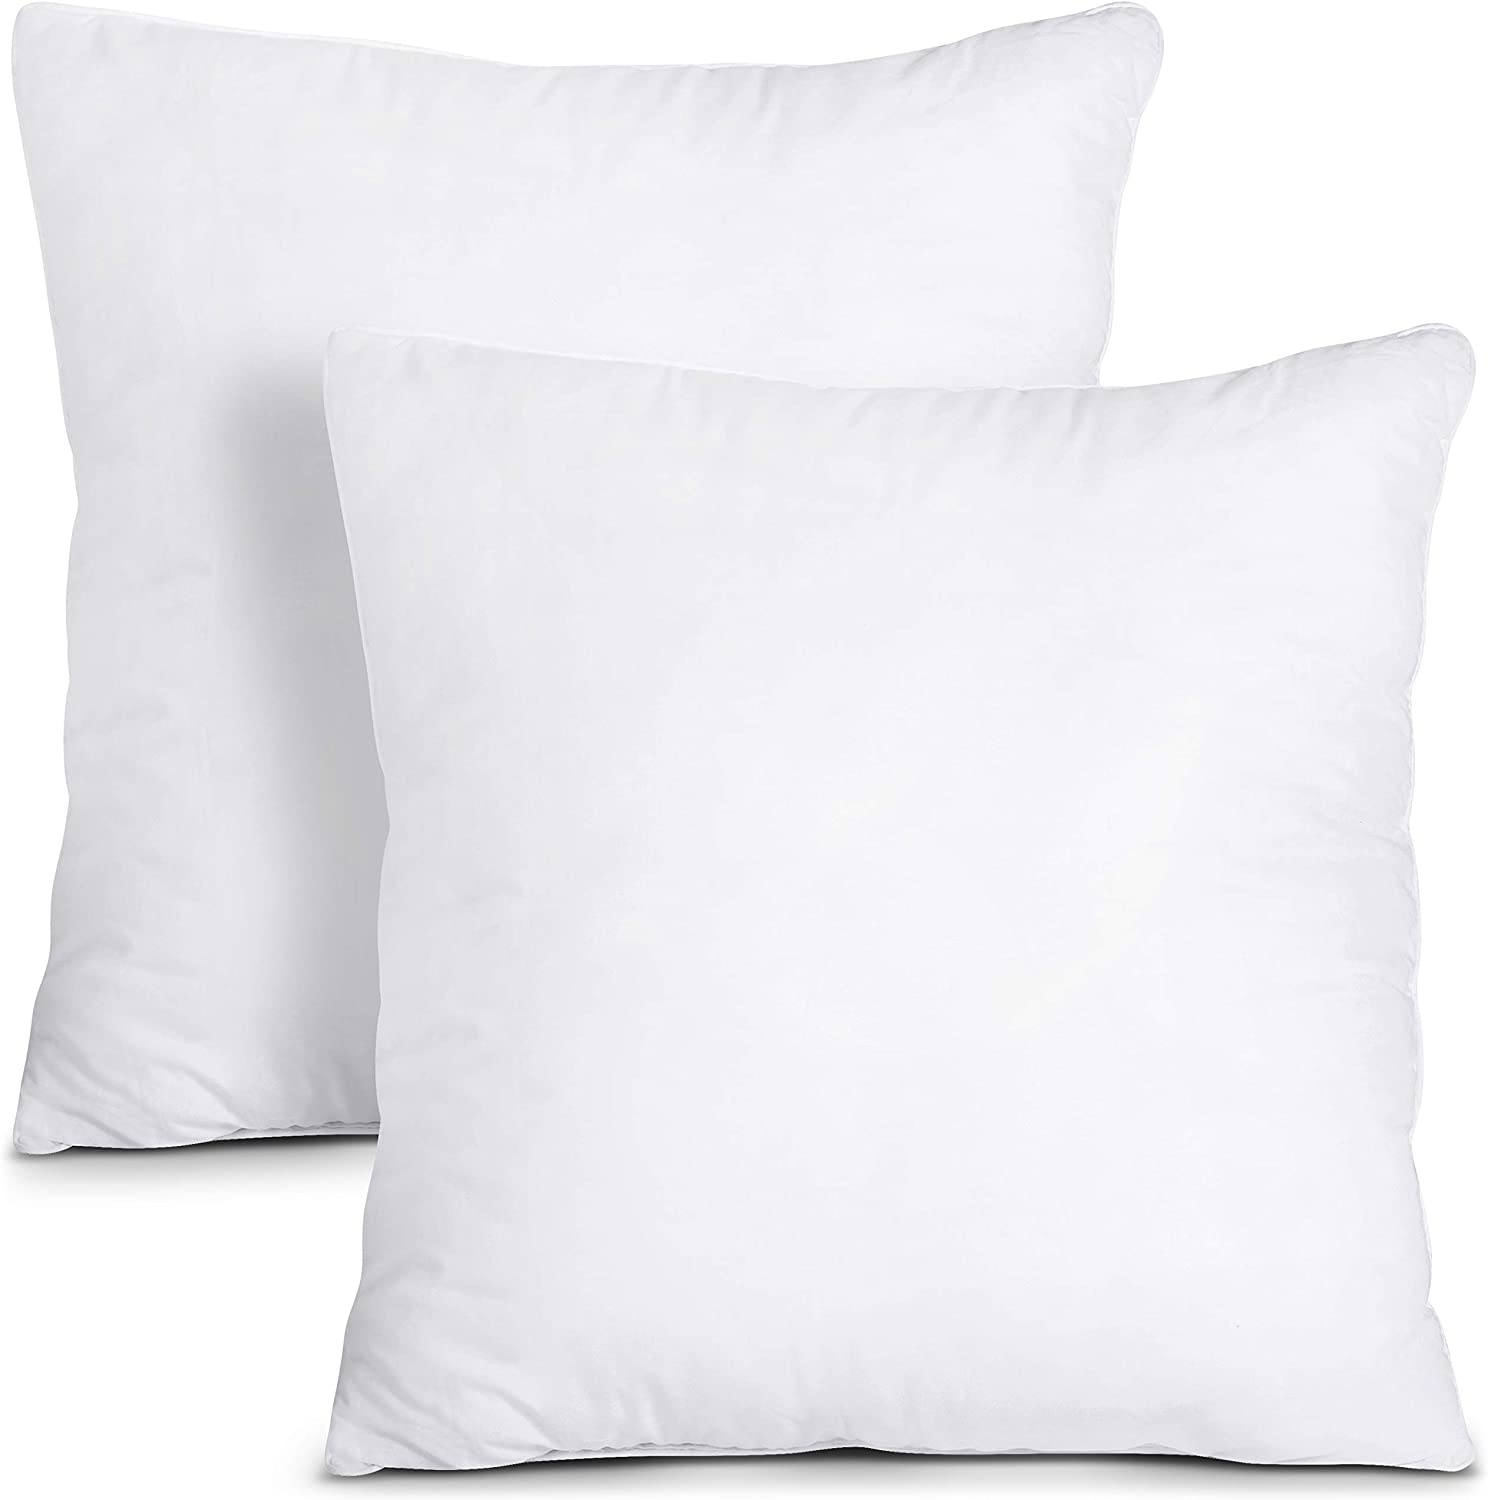 Utopia Bedding Throw Pillows Insert (Pack of 2, White) - 24 x 24 Inches Bed and Couch Pillows - Indoor Decorative Pillows